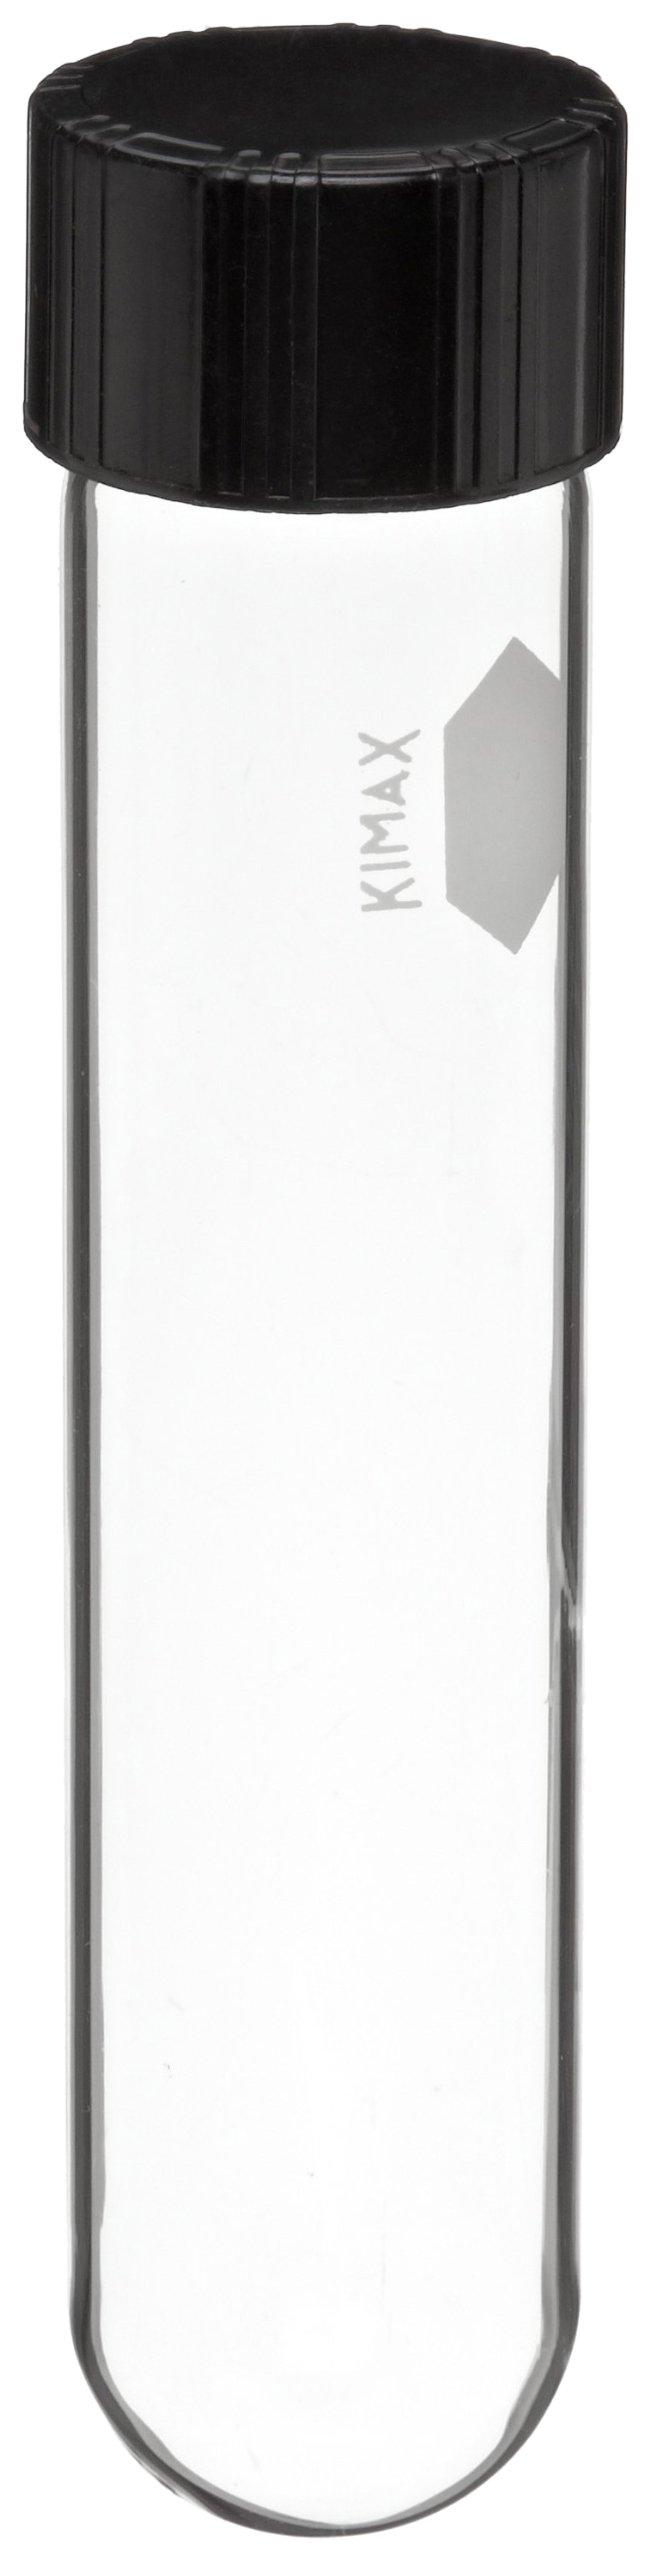 Kimble 45066-25150 KG-33 Borosilicate Glass 50mL Culture Tube, with Rubber Lined Screw Cap, Clear (Pack of 36)